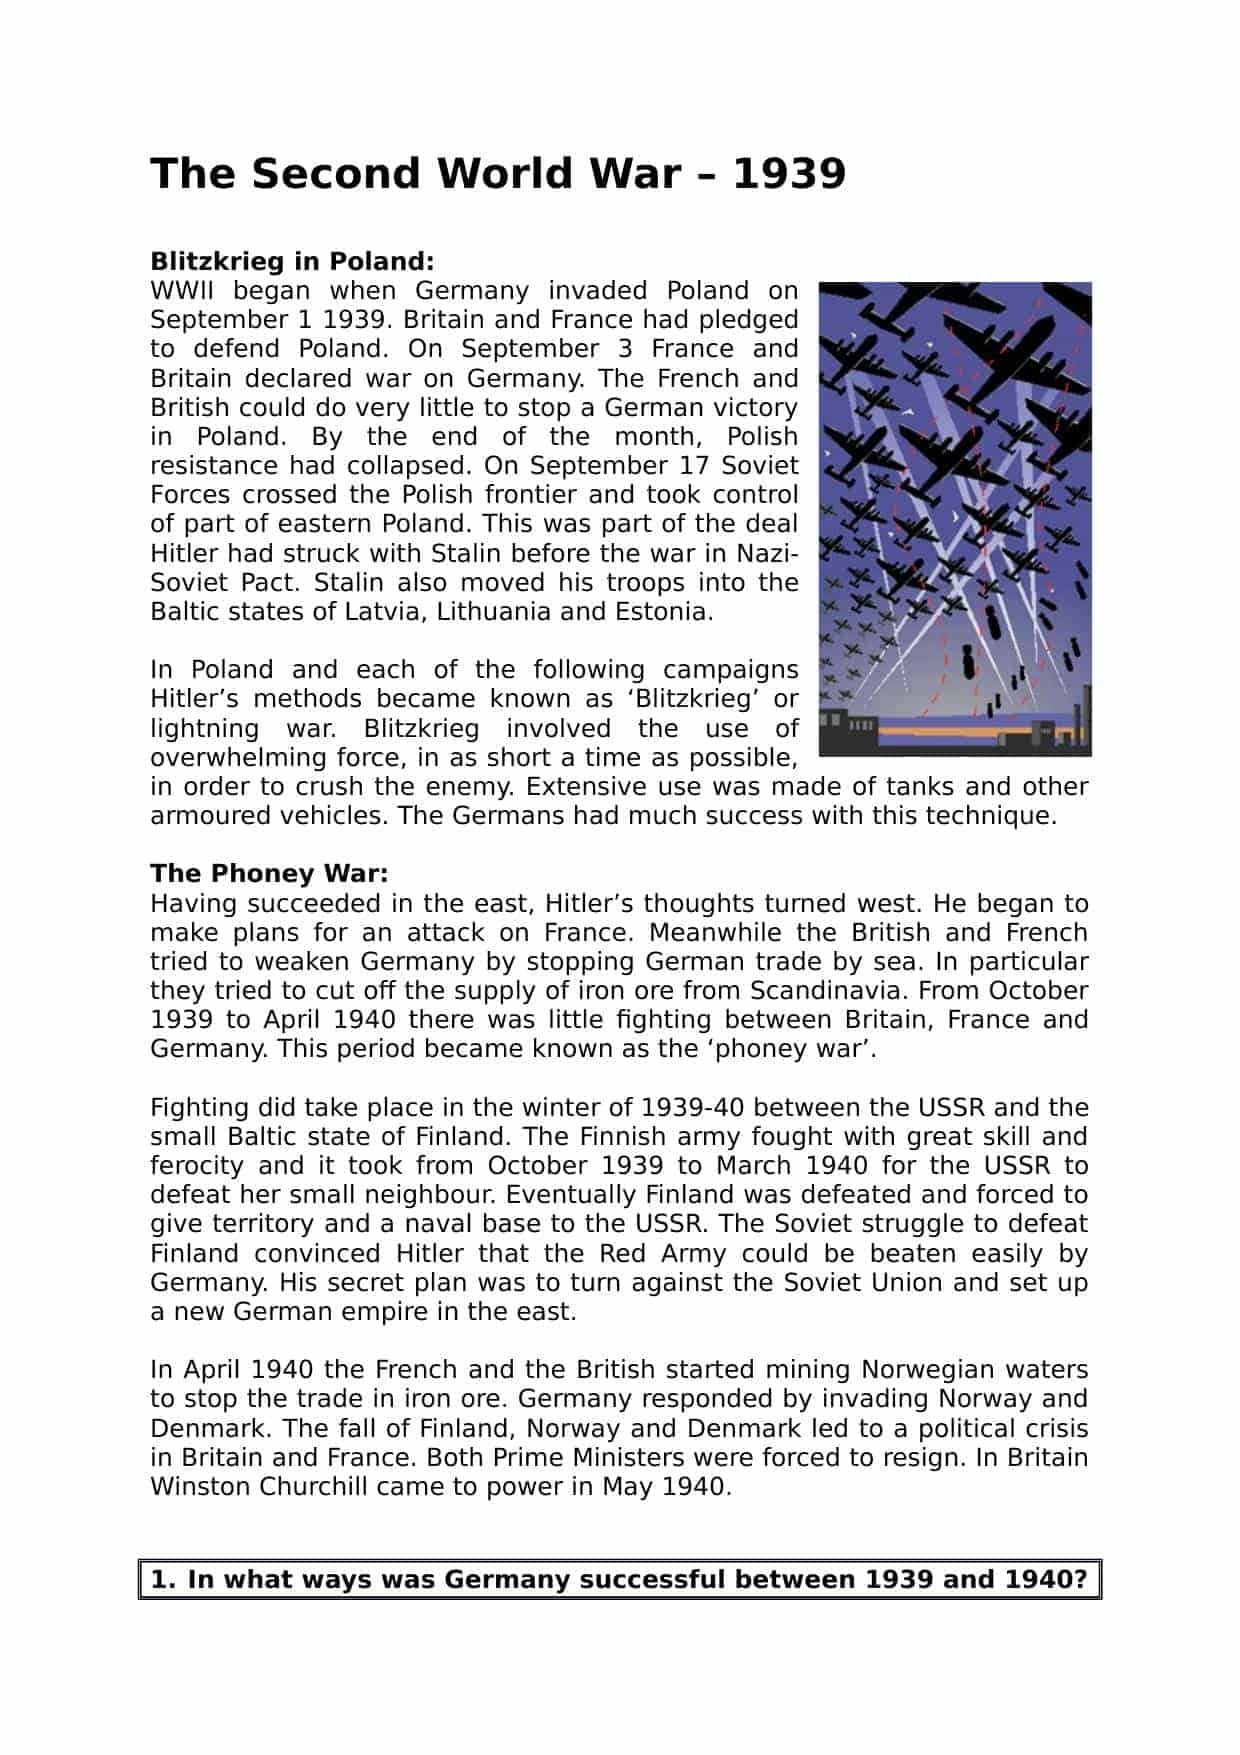 The Second Word War Facts Summary Worksheet Ks3 Lesson